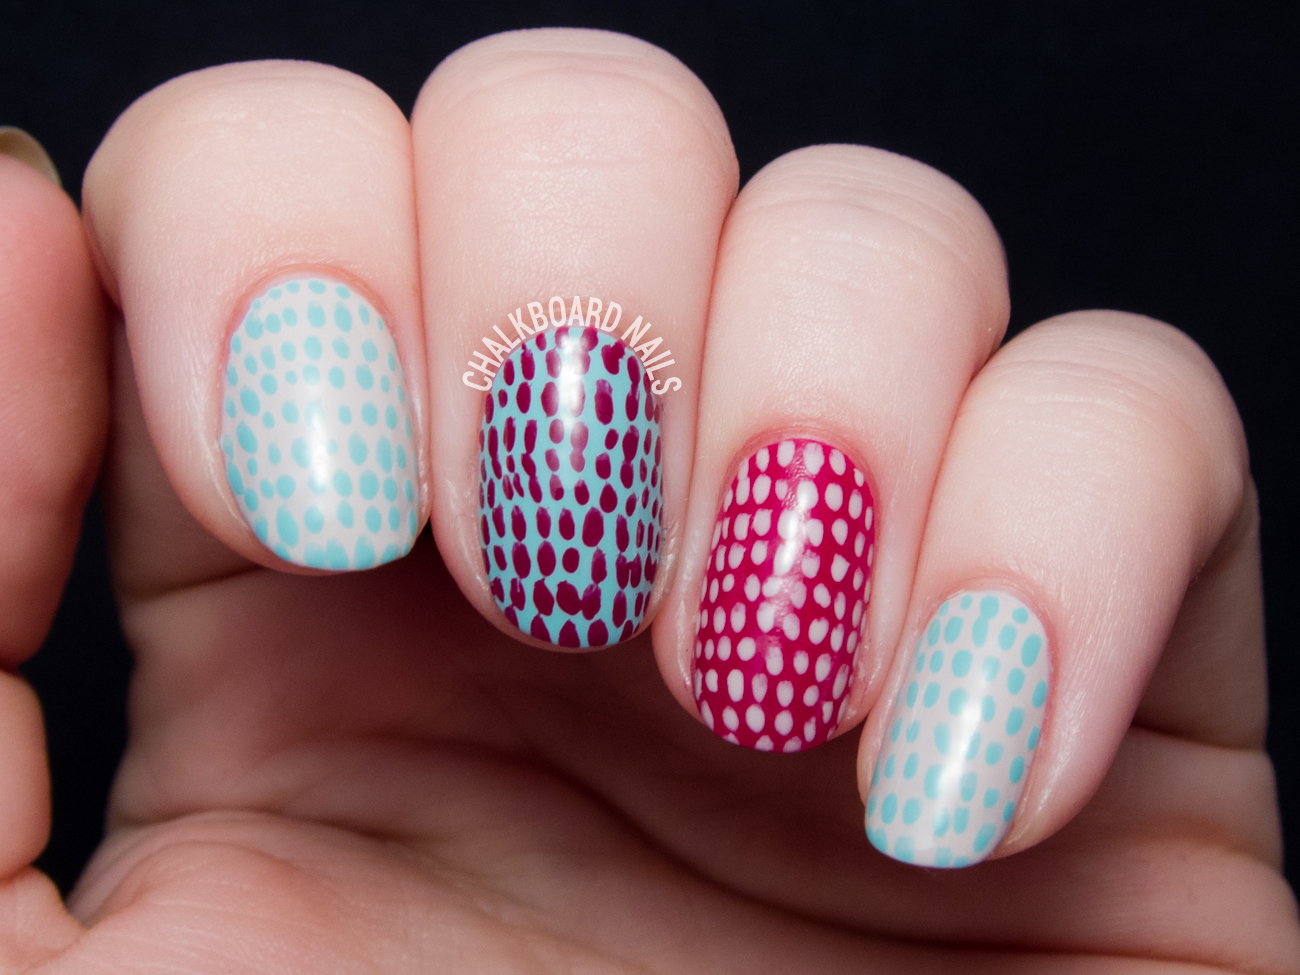 Simple scaled nail art tutorial by @chalkboardnails